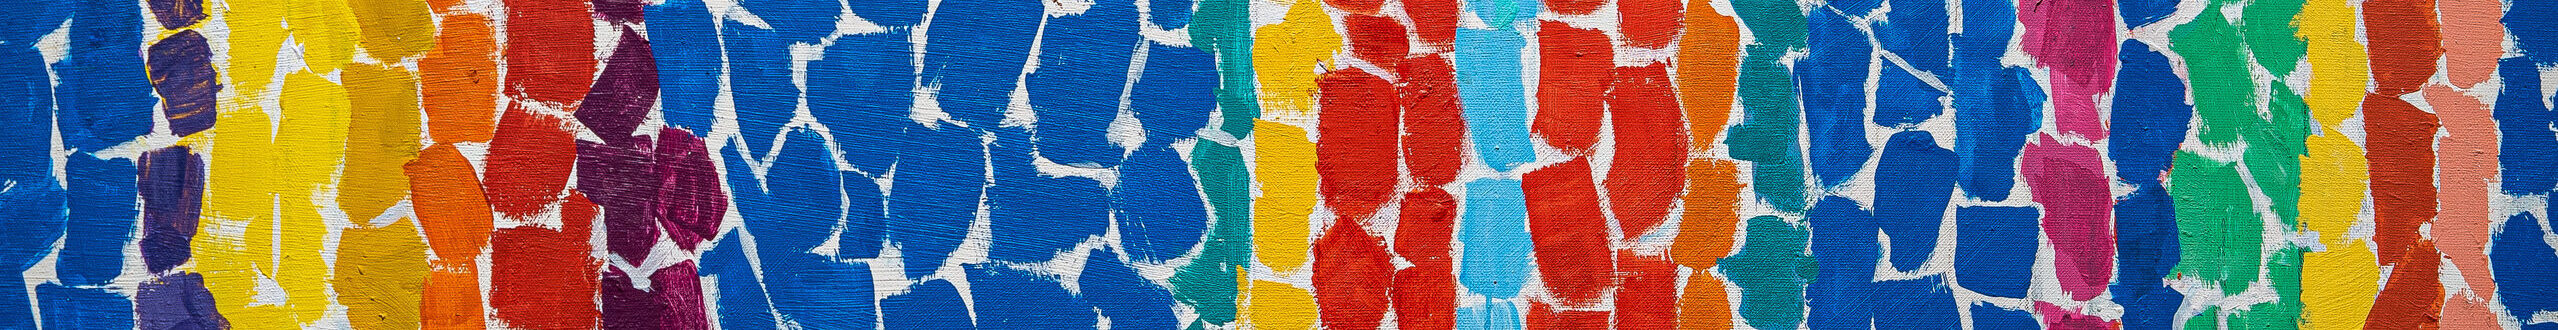 Abstract painting composed of brightly colored, lozenge-shaped brushstrokes in vertical stripes of navy, purple, turqouise, yellow, orange and red.The overall effect is as if the painting was collaged out of torn pieces of paper, with the white of the canvas showing through.